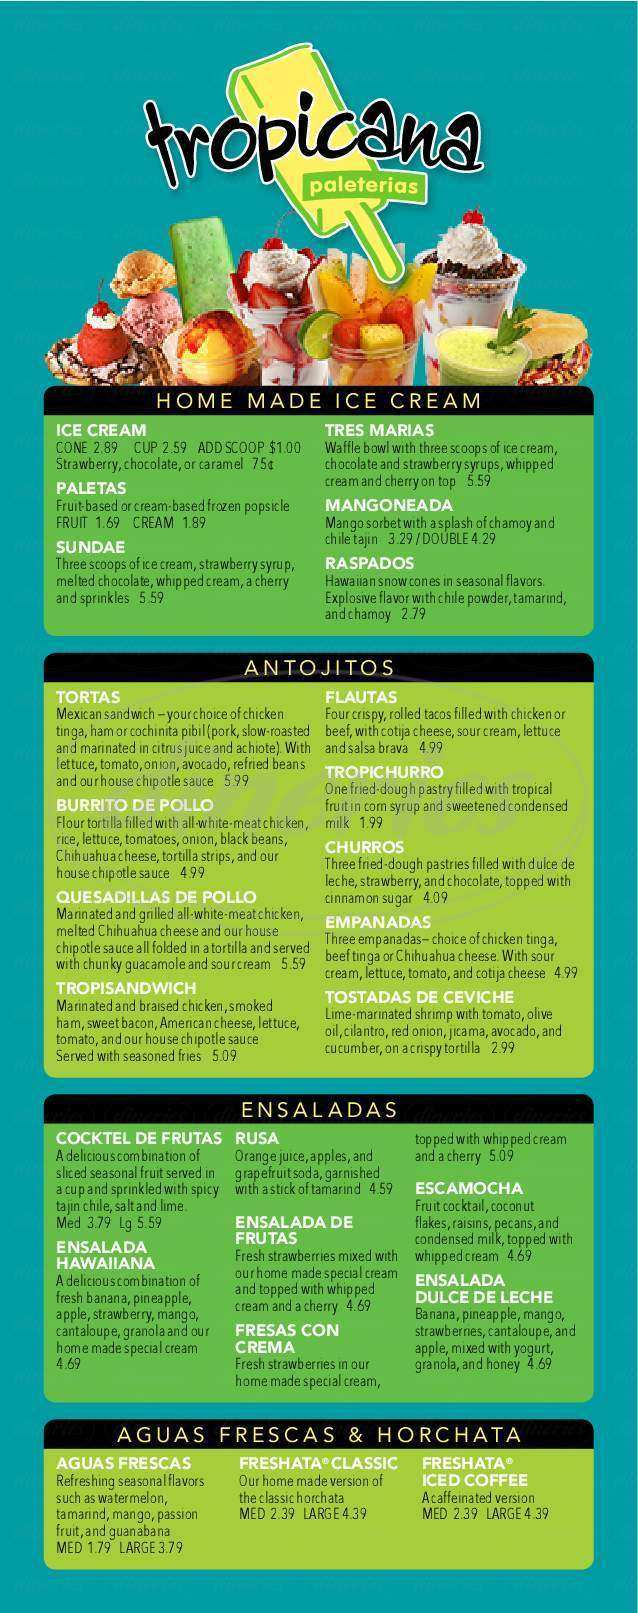 menu for Paleteria Tropicana